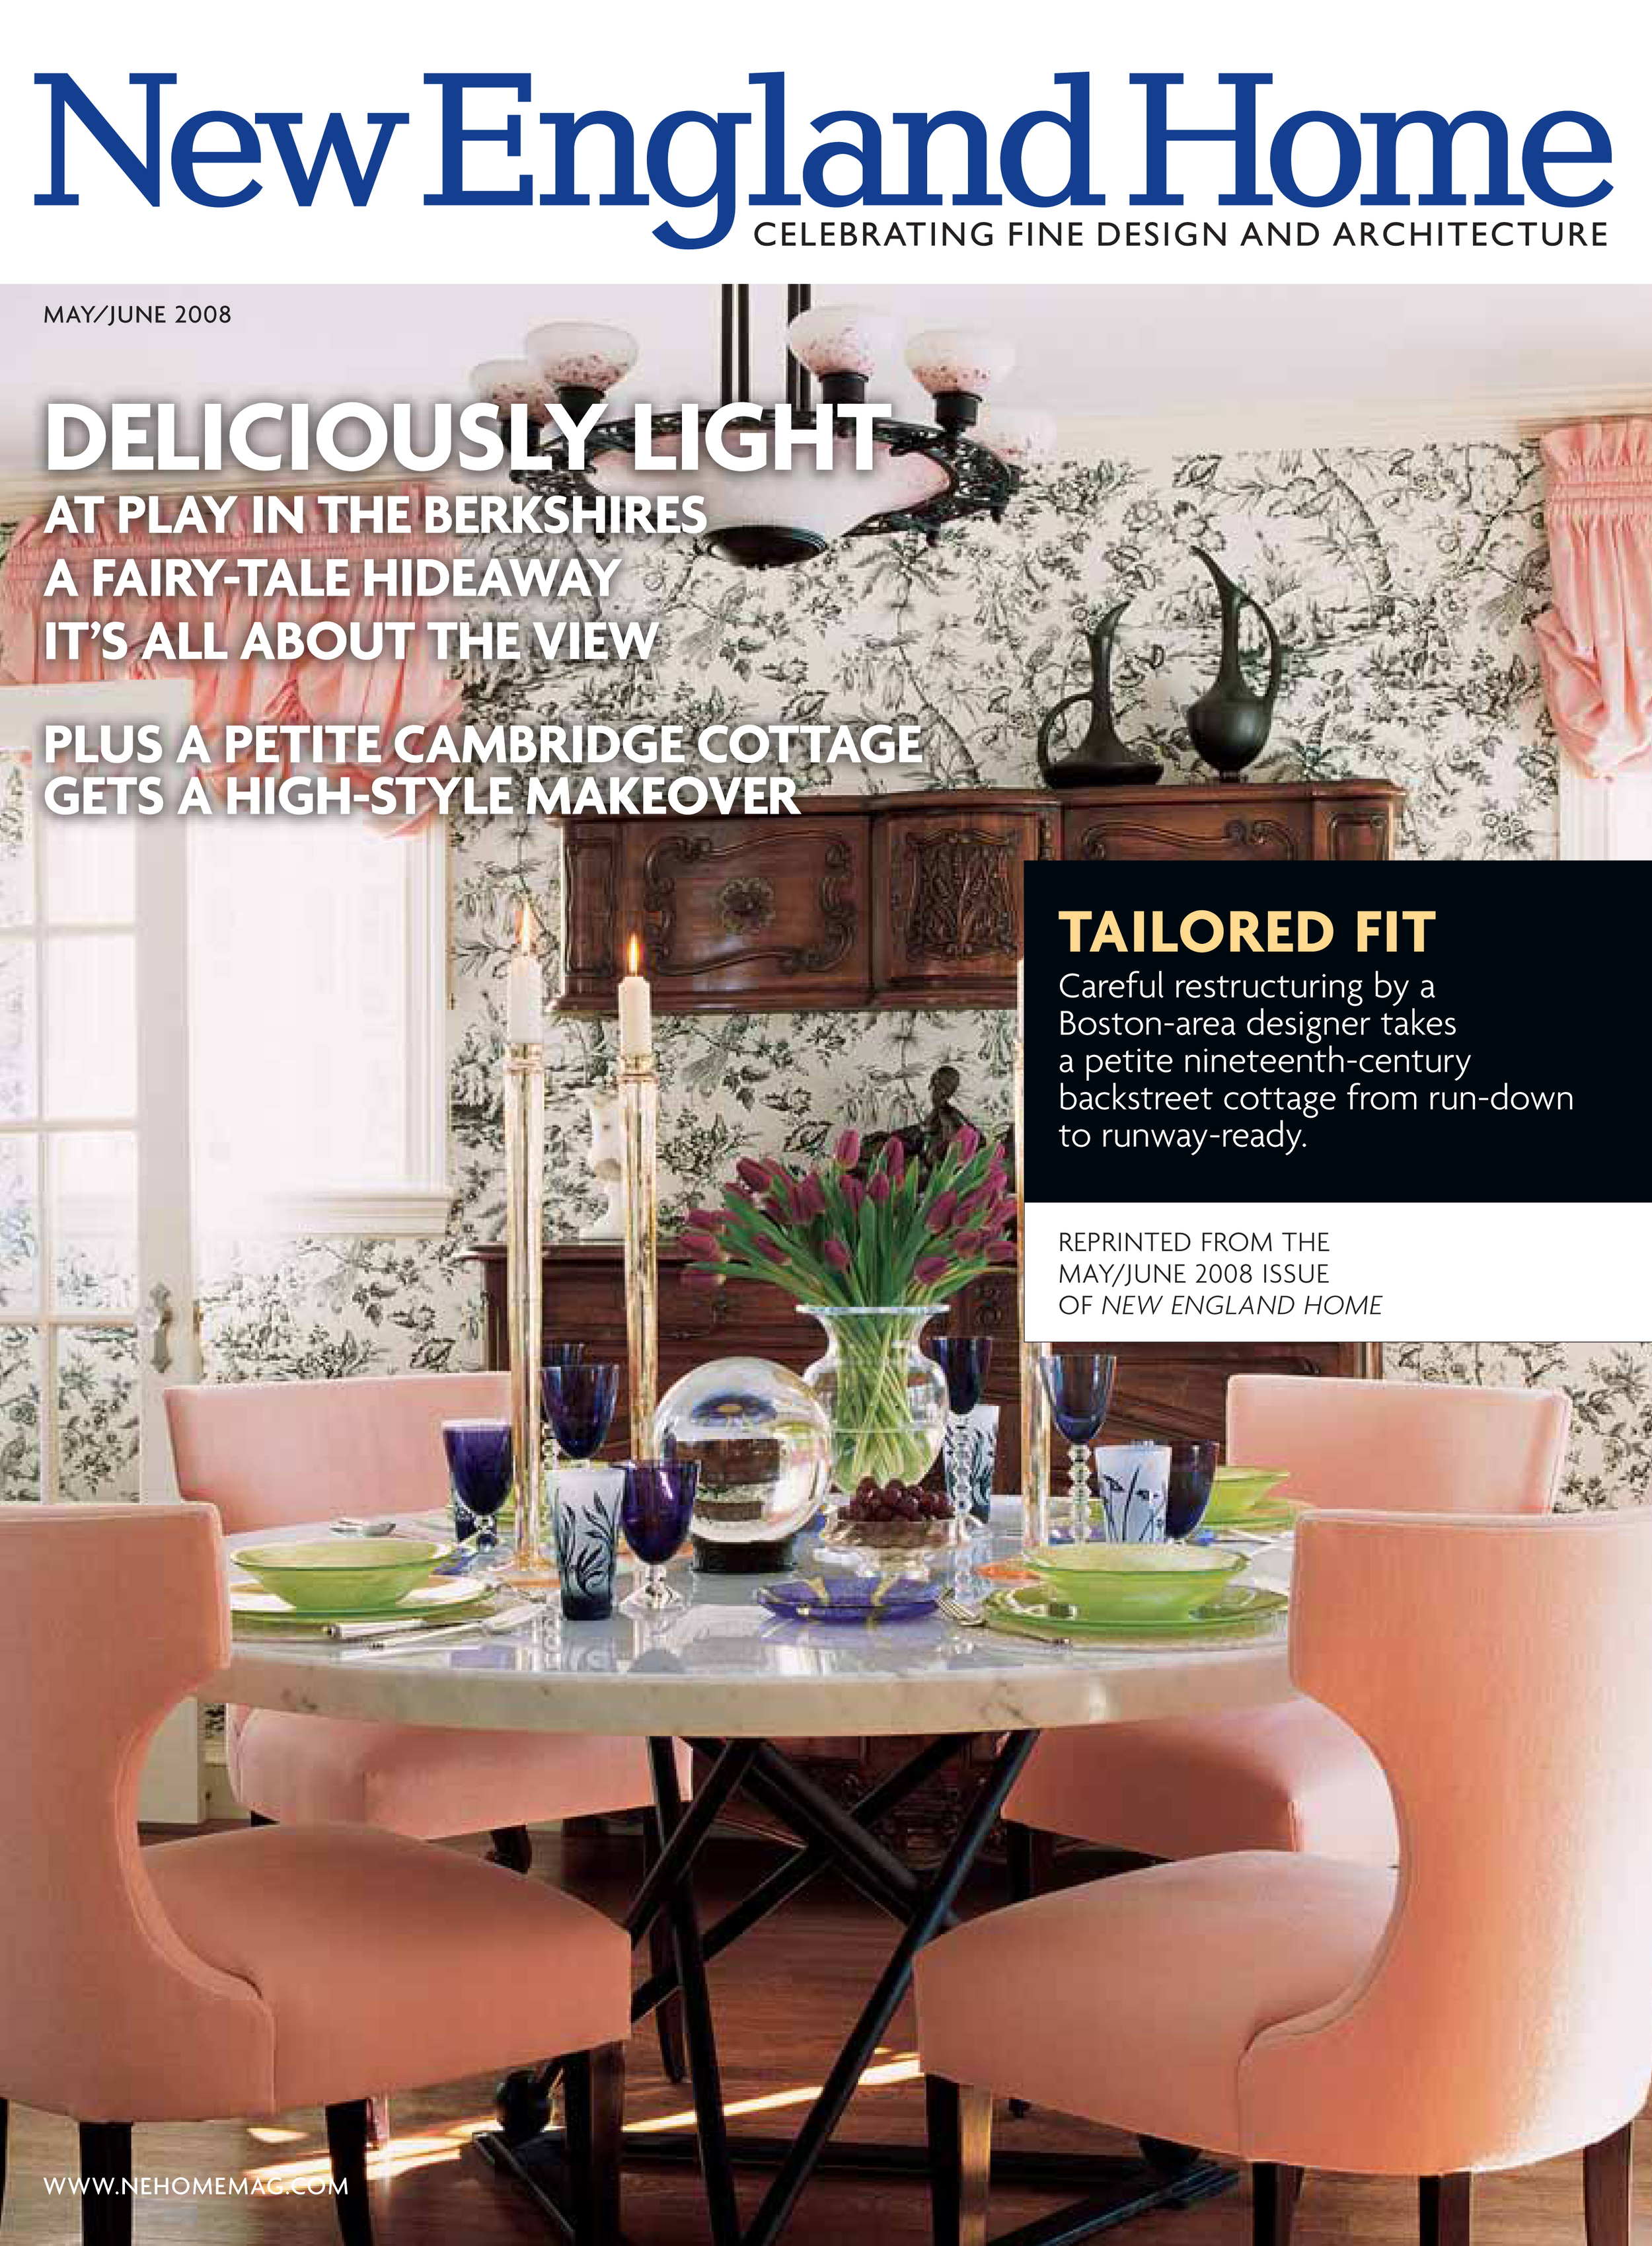 New England Home Mag - 10 Foster - reprint proof 1-1.jpg